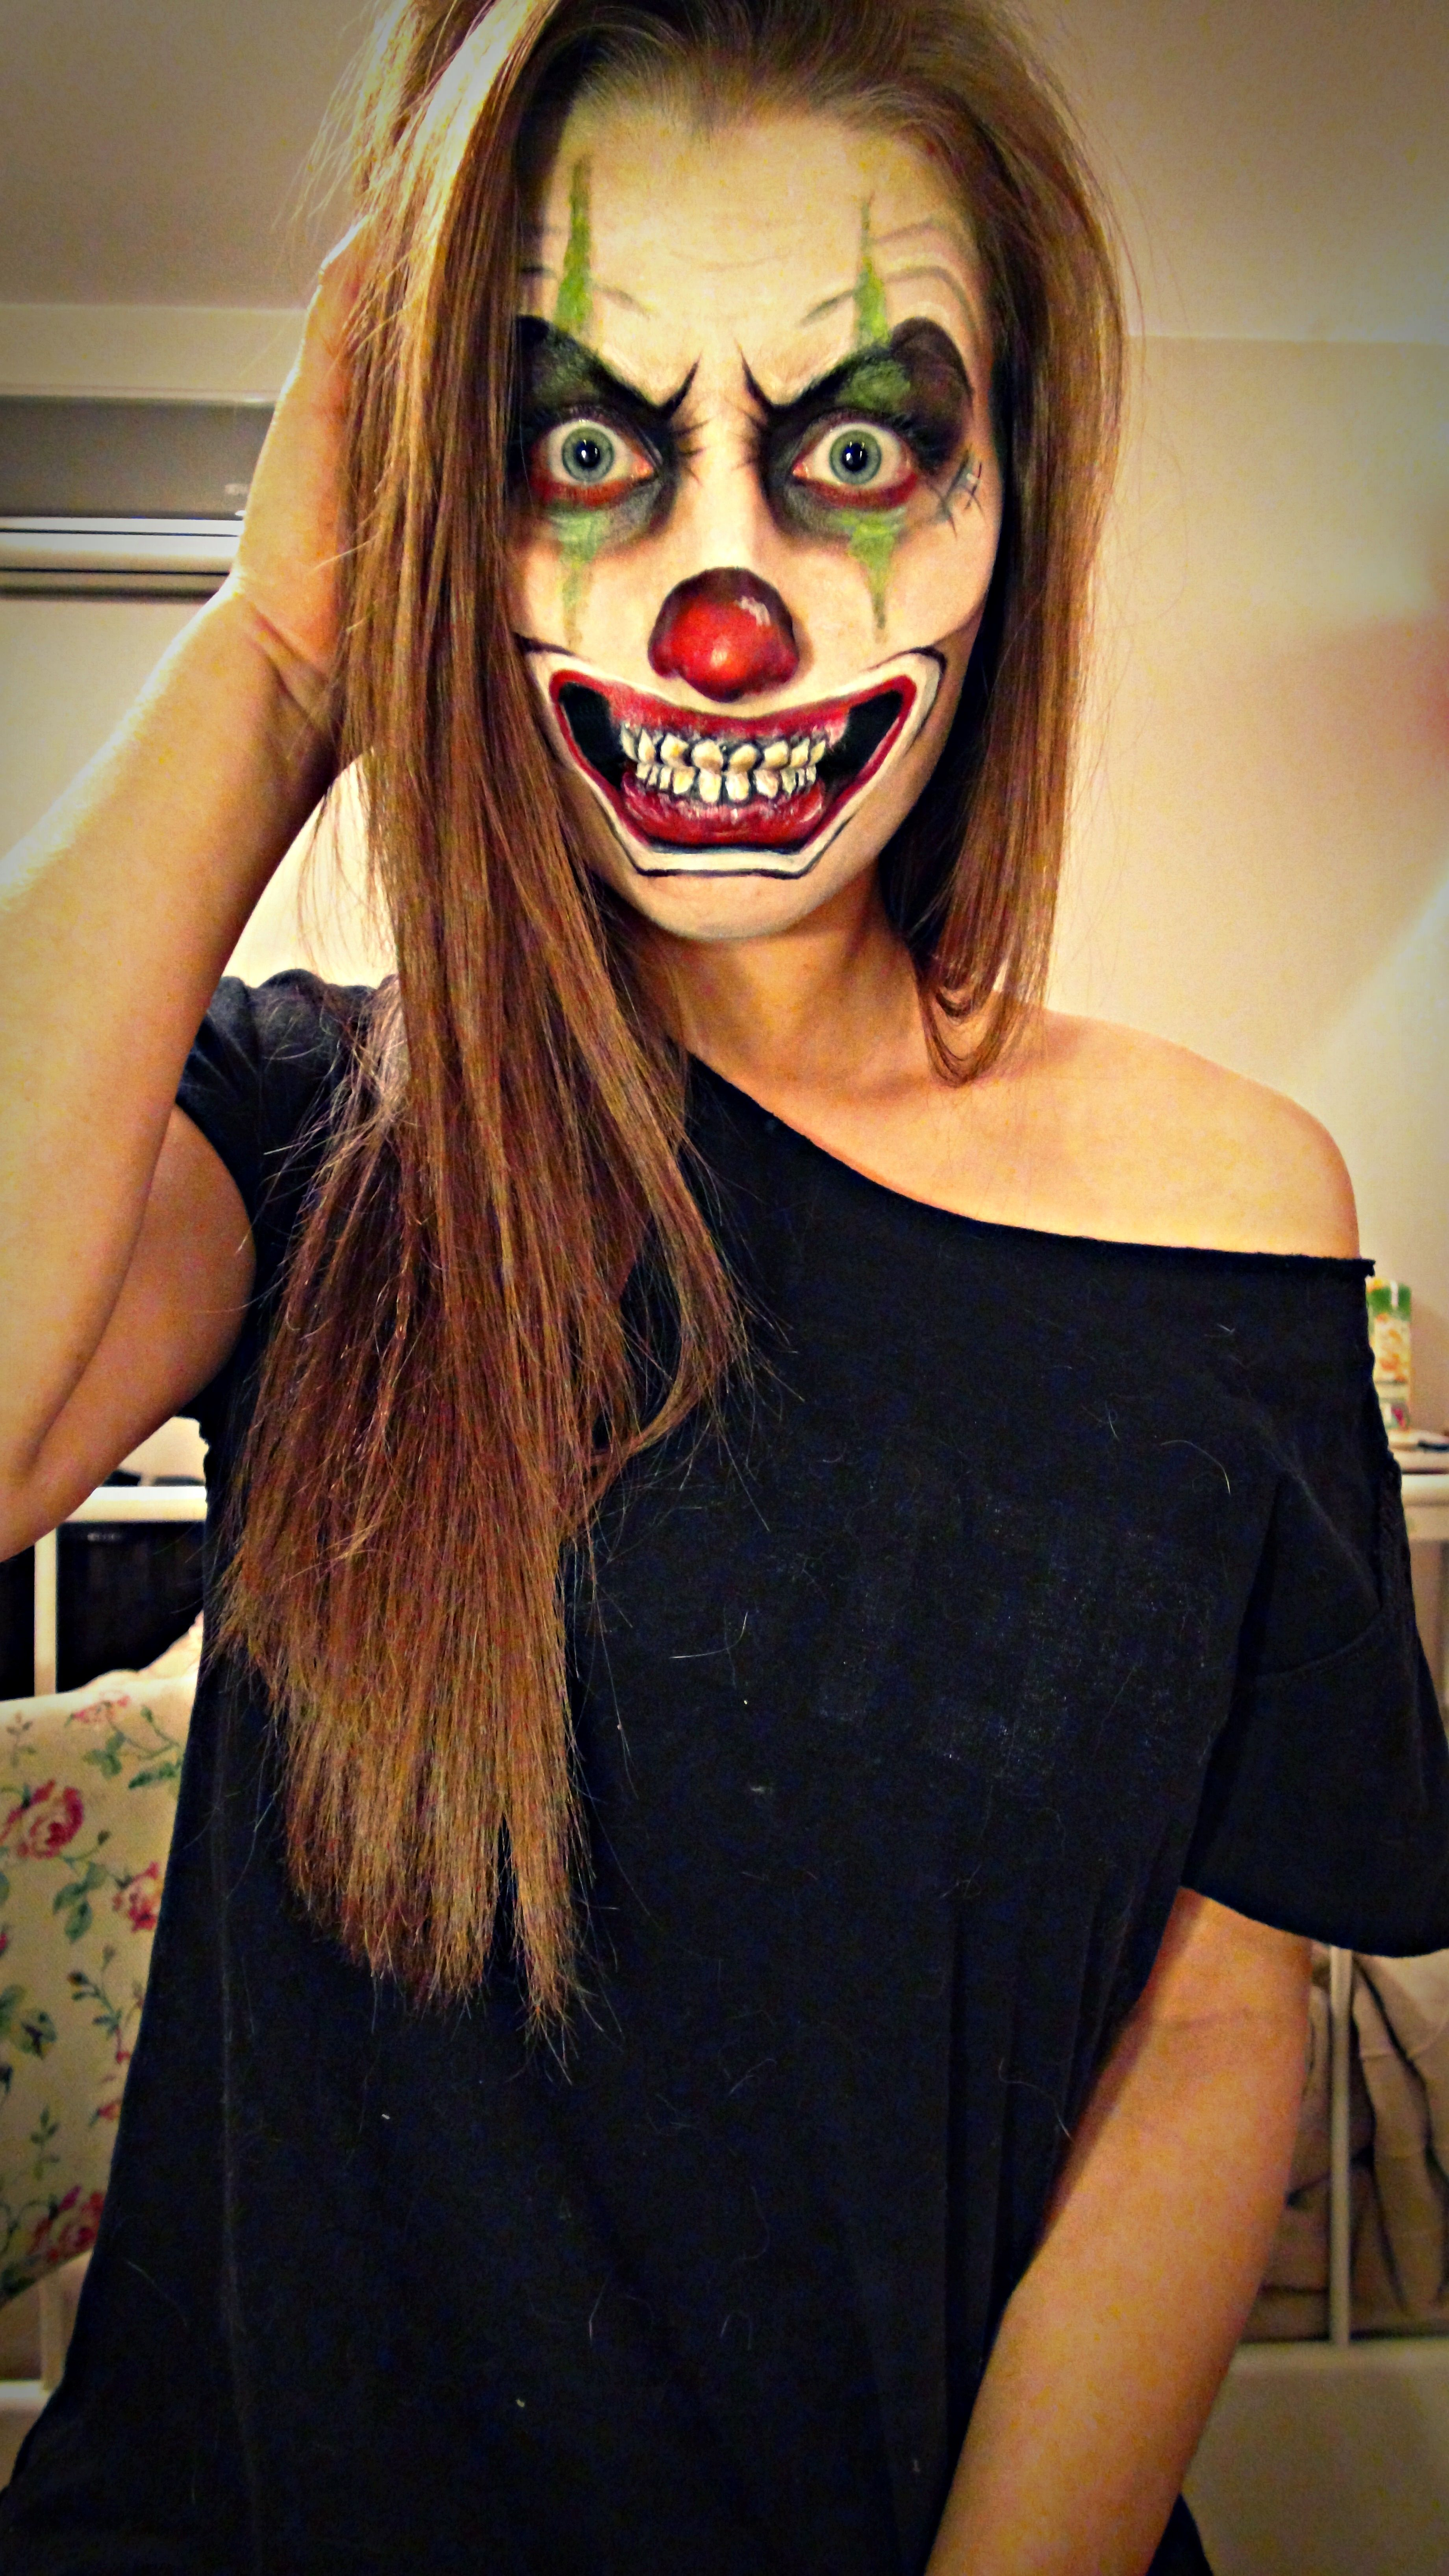 Scary clown makeup | Halloween make ups and others | Pinterest ...